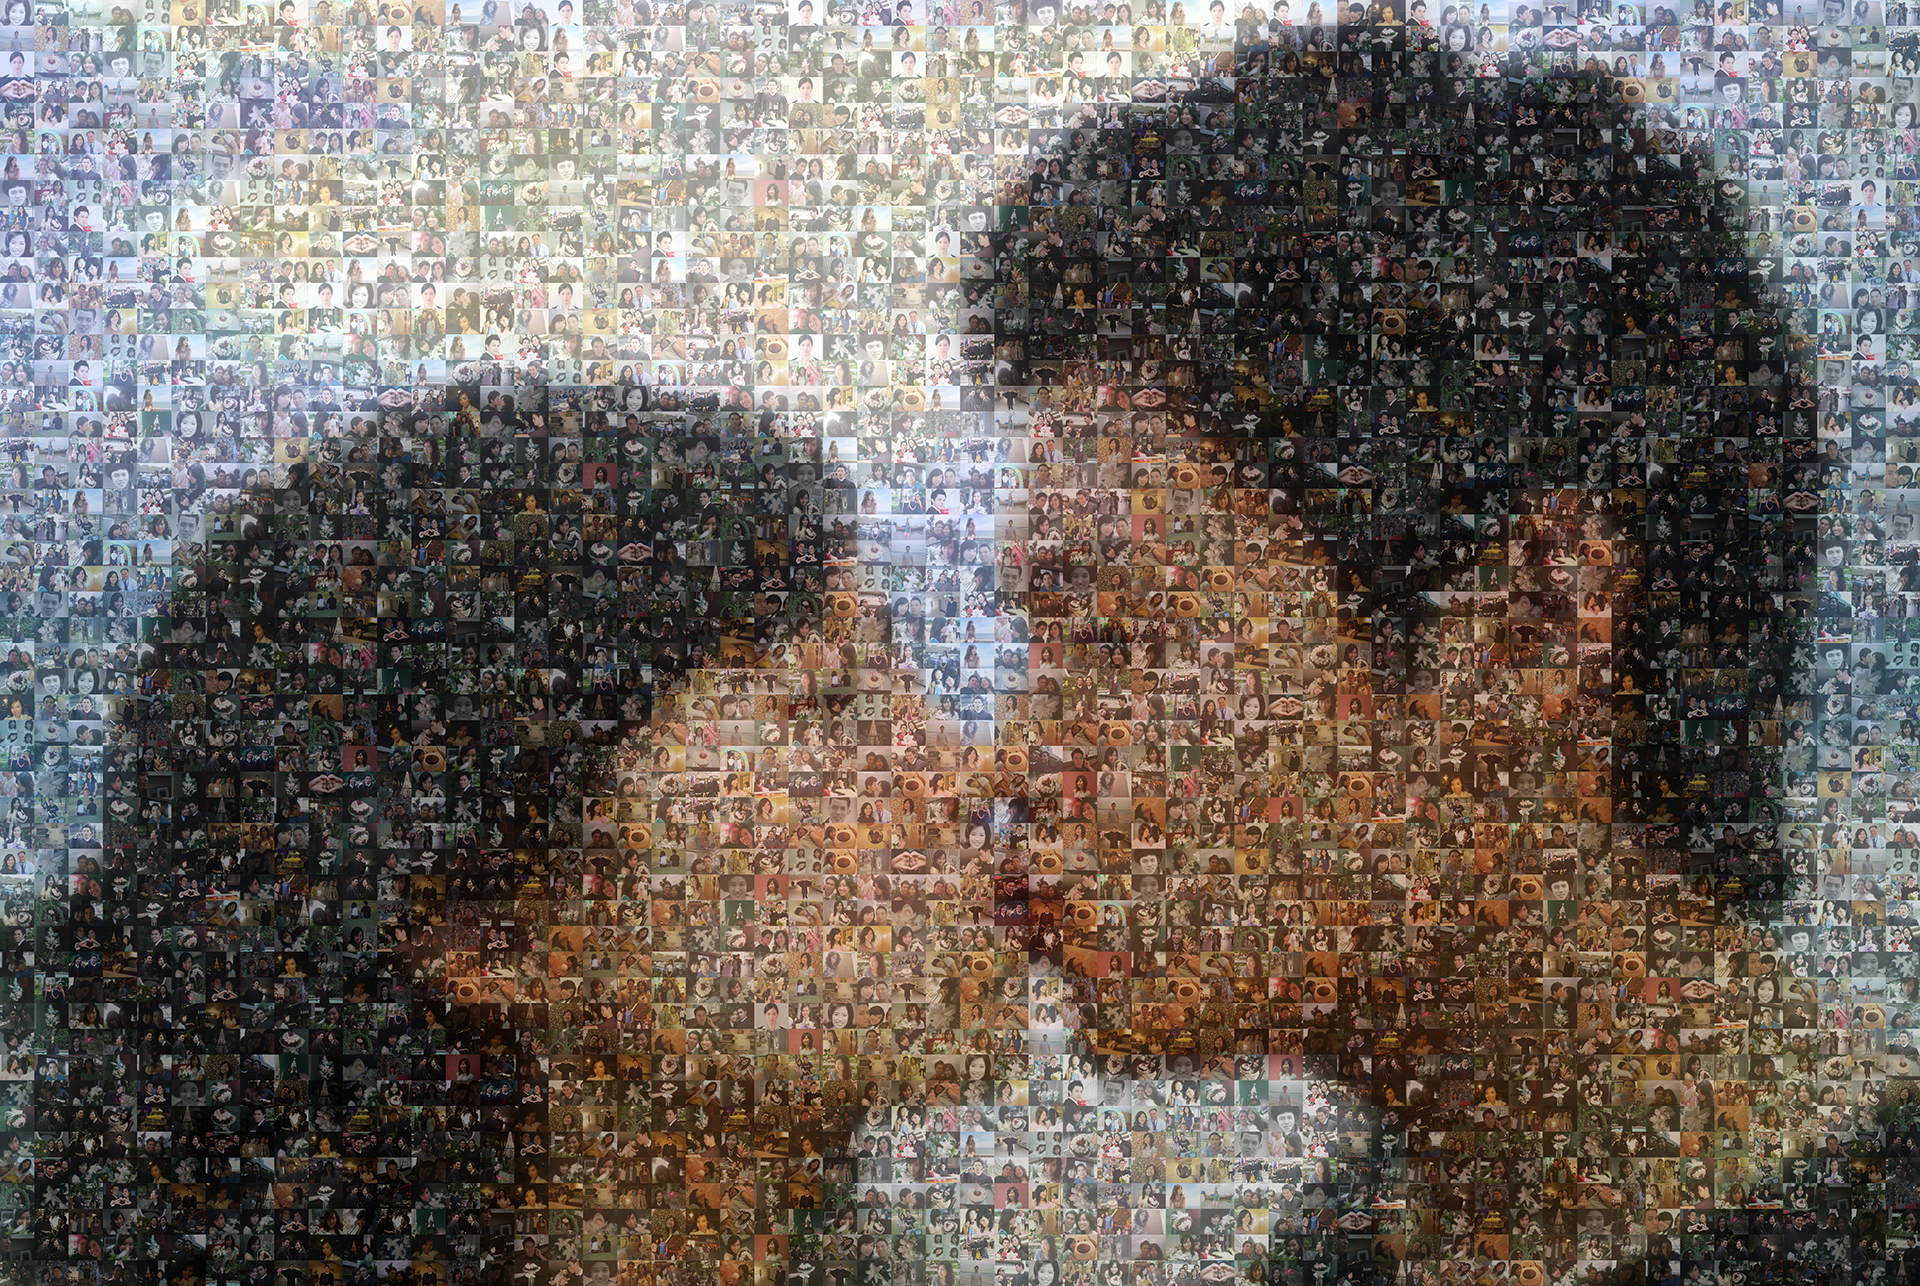 photo mosaic created using only 178 customer selected photos